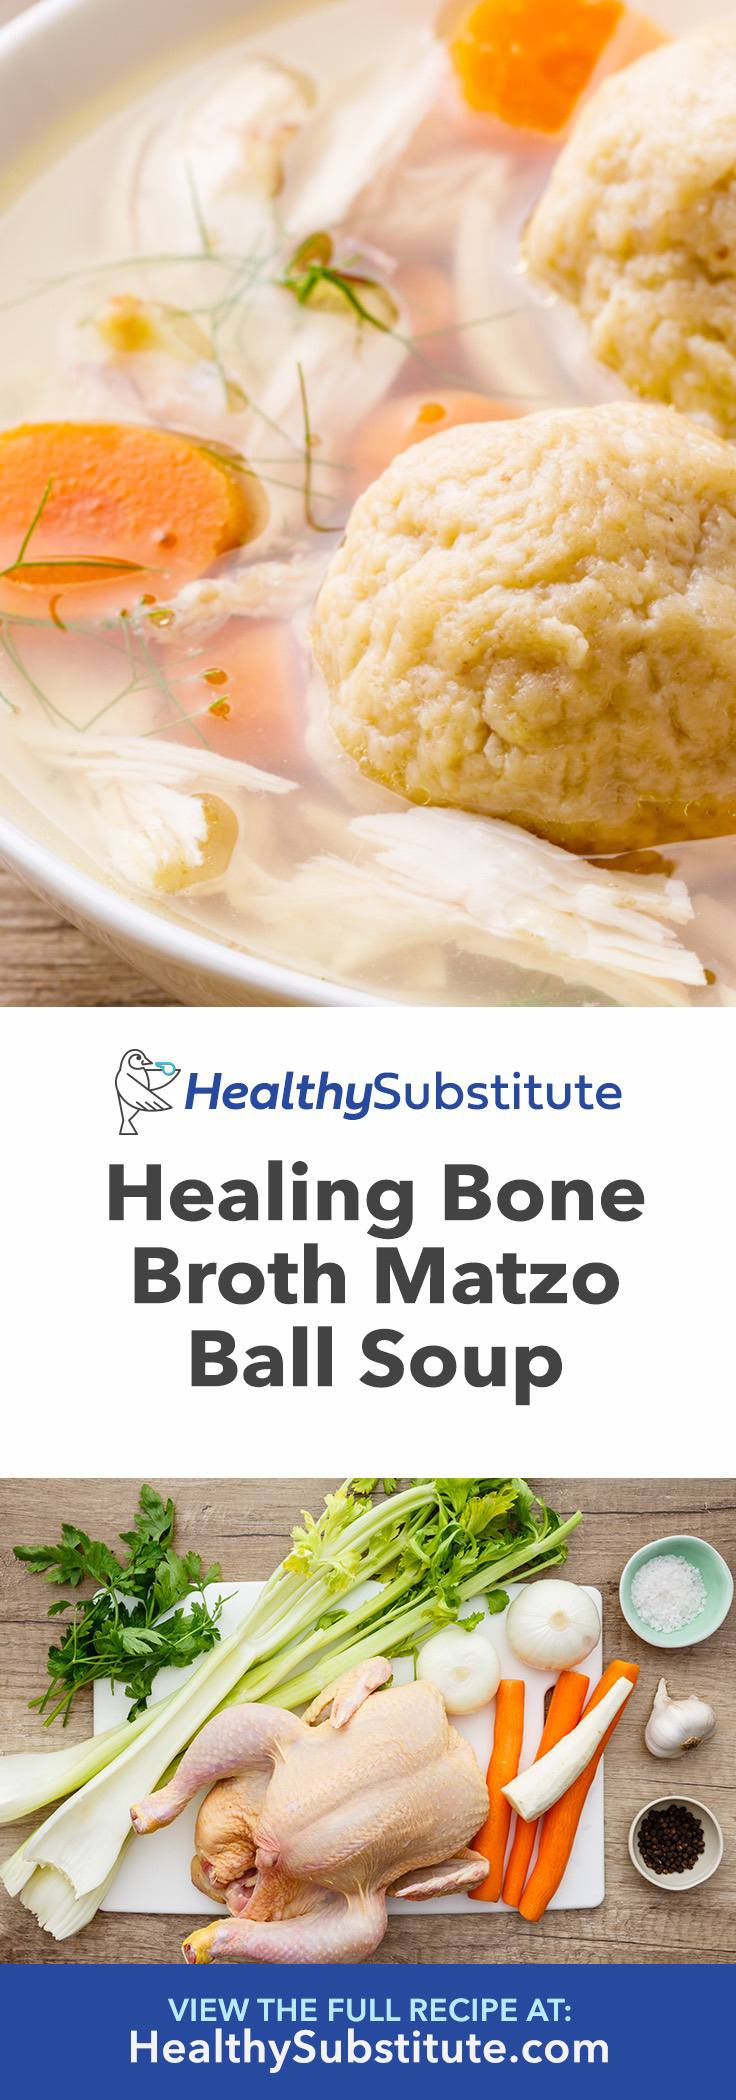 How to Make Healing Bone Broth Matzo Ball Soup to Get Rid of a Cold